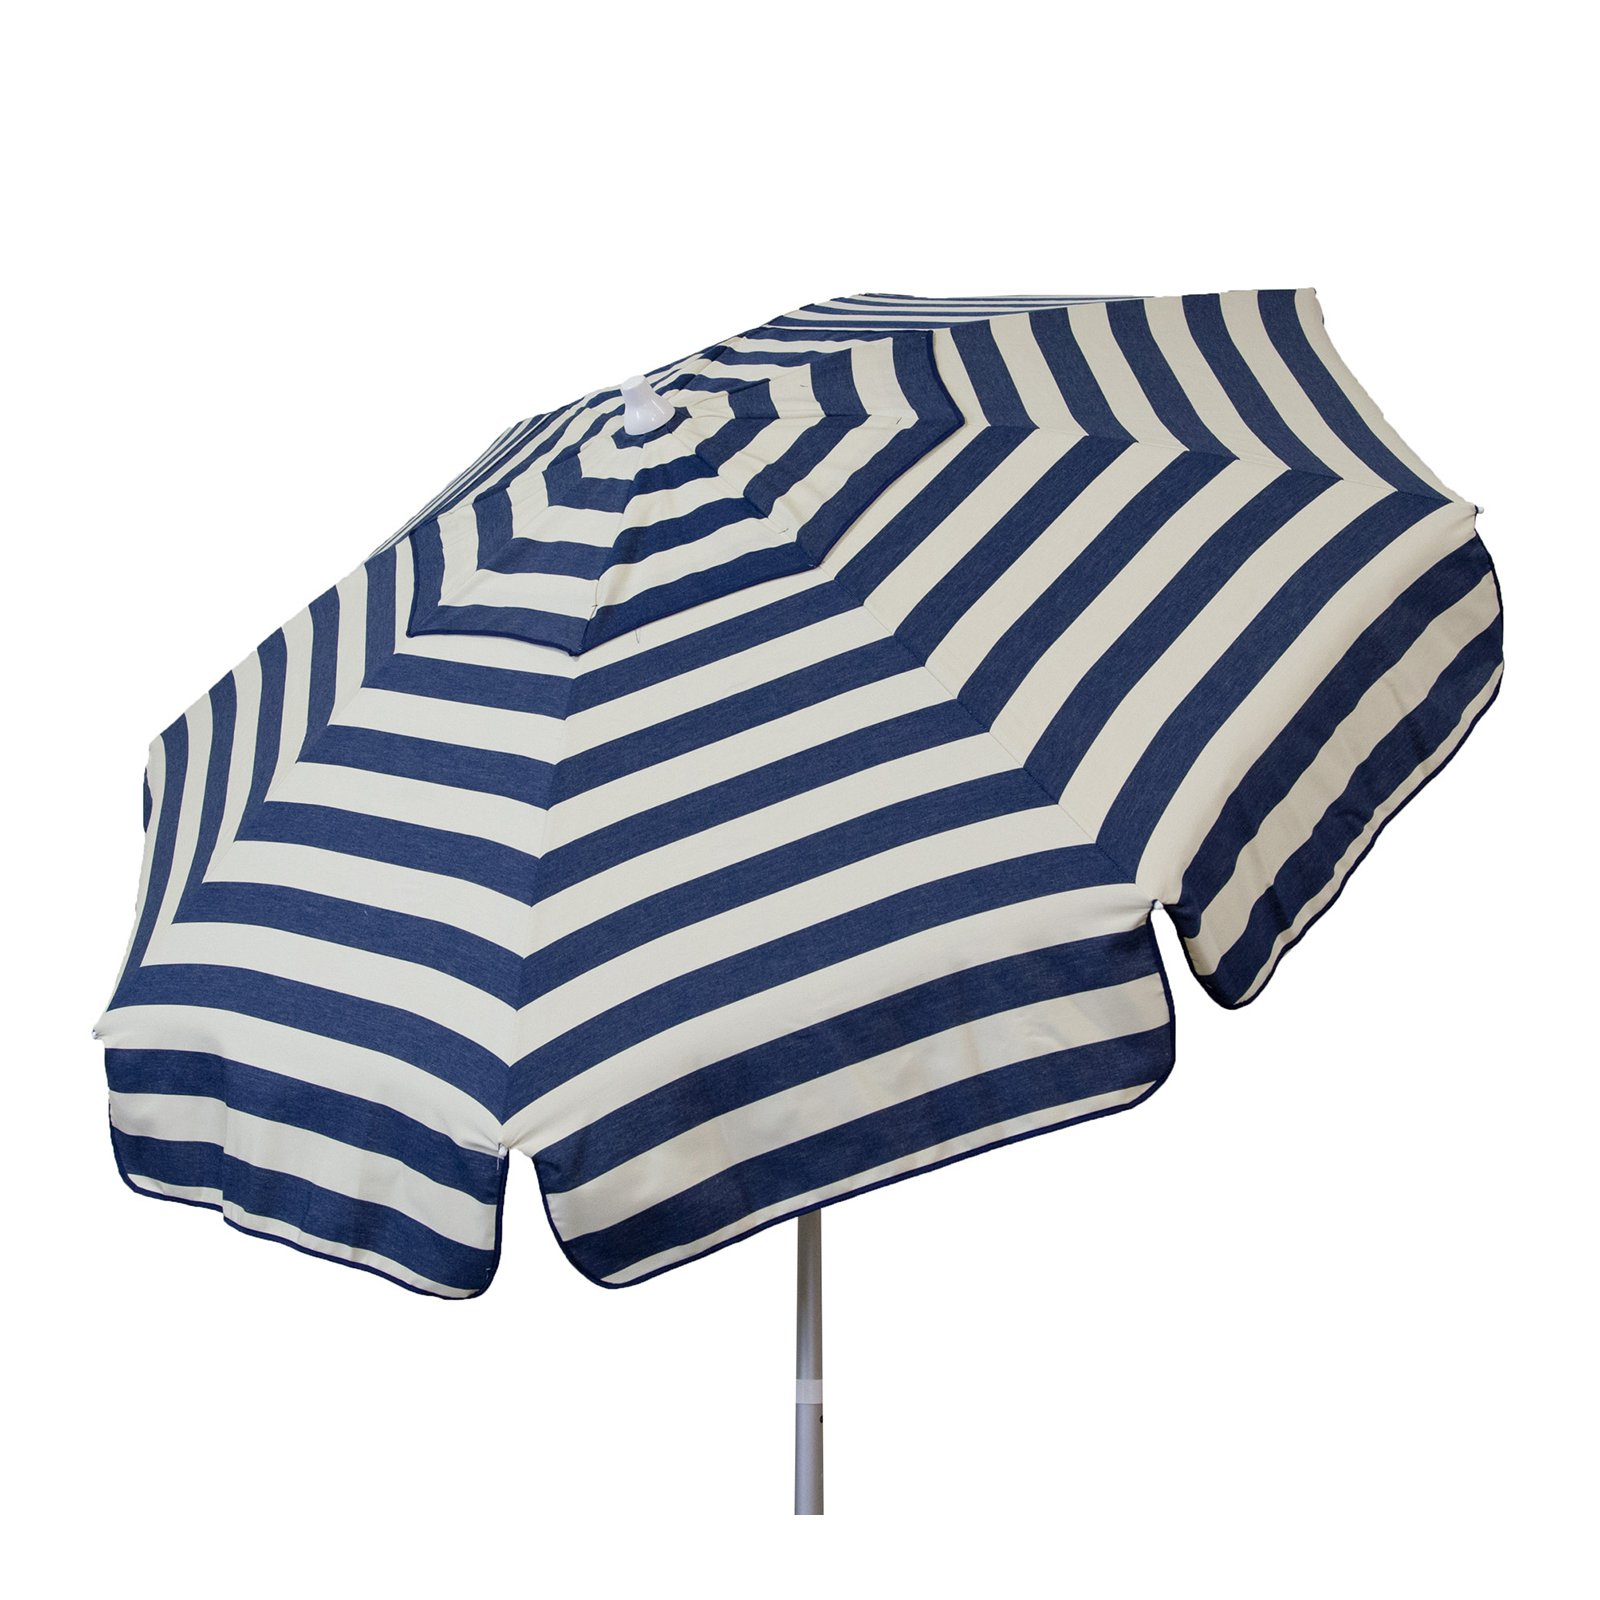 DestinationGear Euro 6' Umbrella Stripe Navy and Vanilla Patio Pole